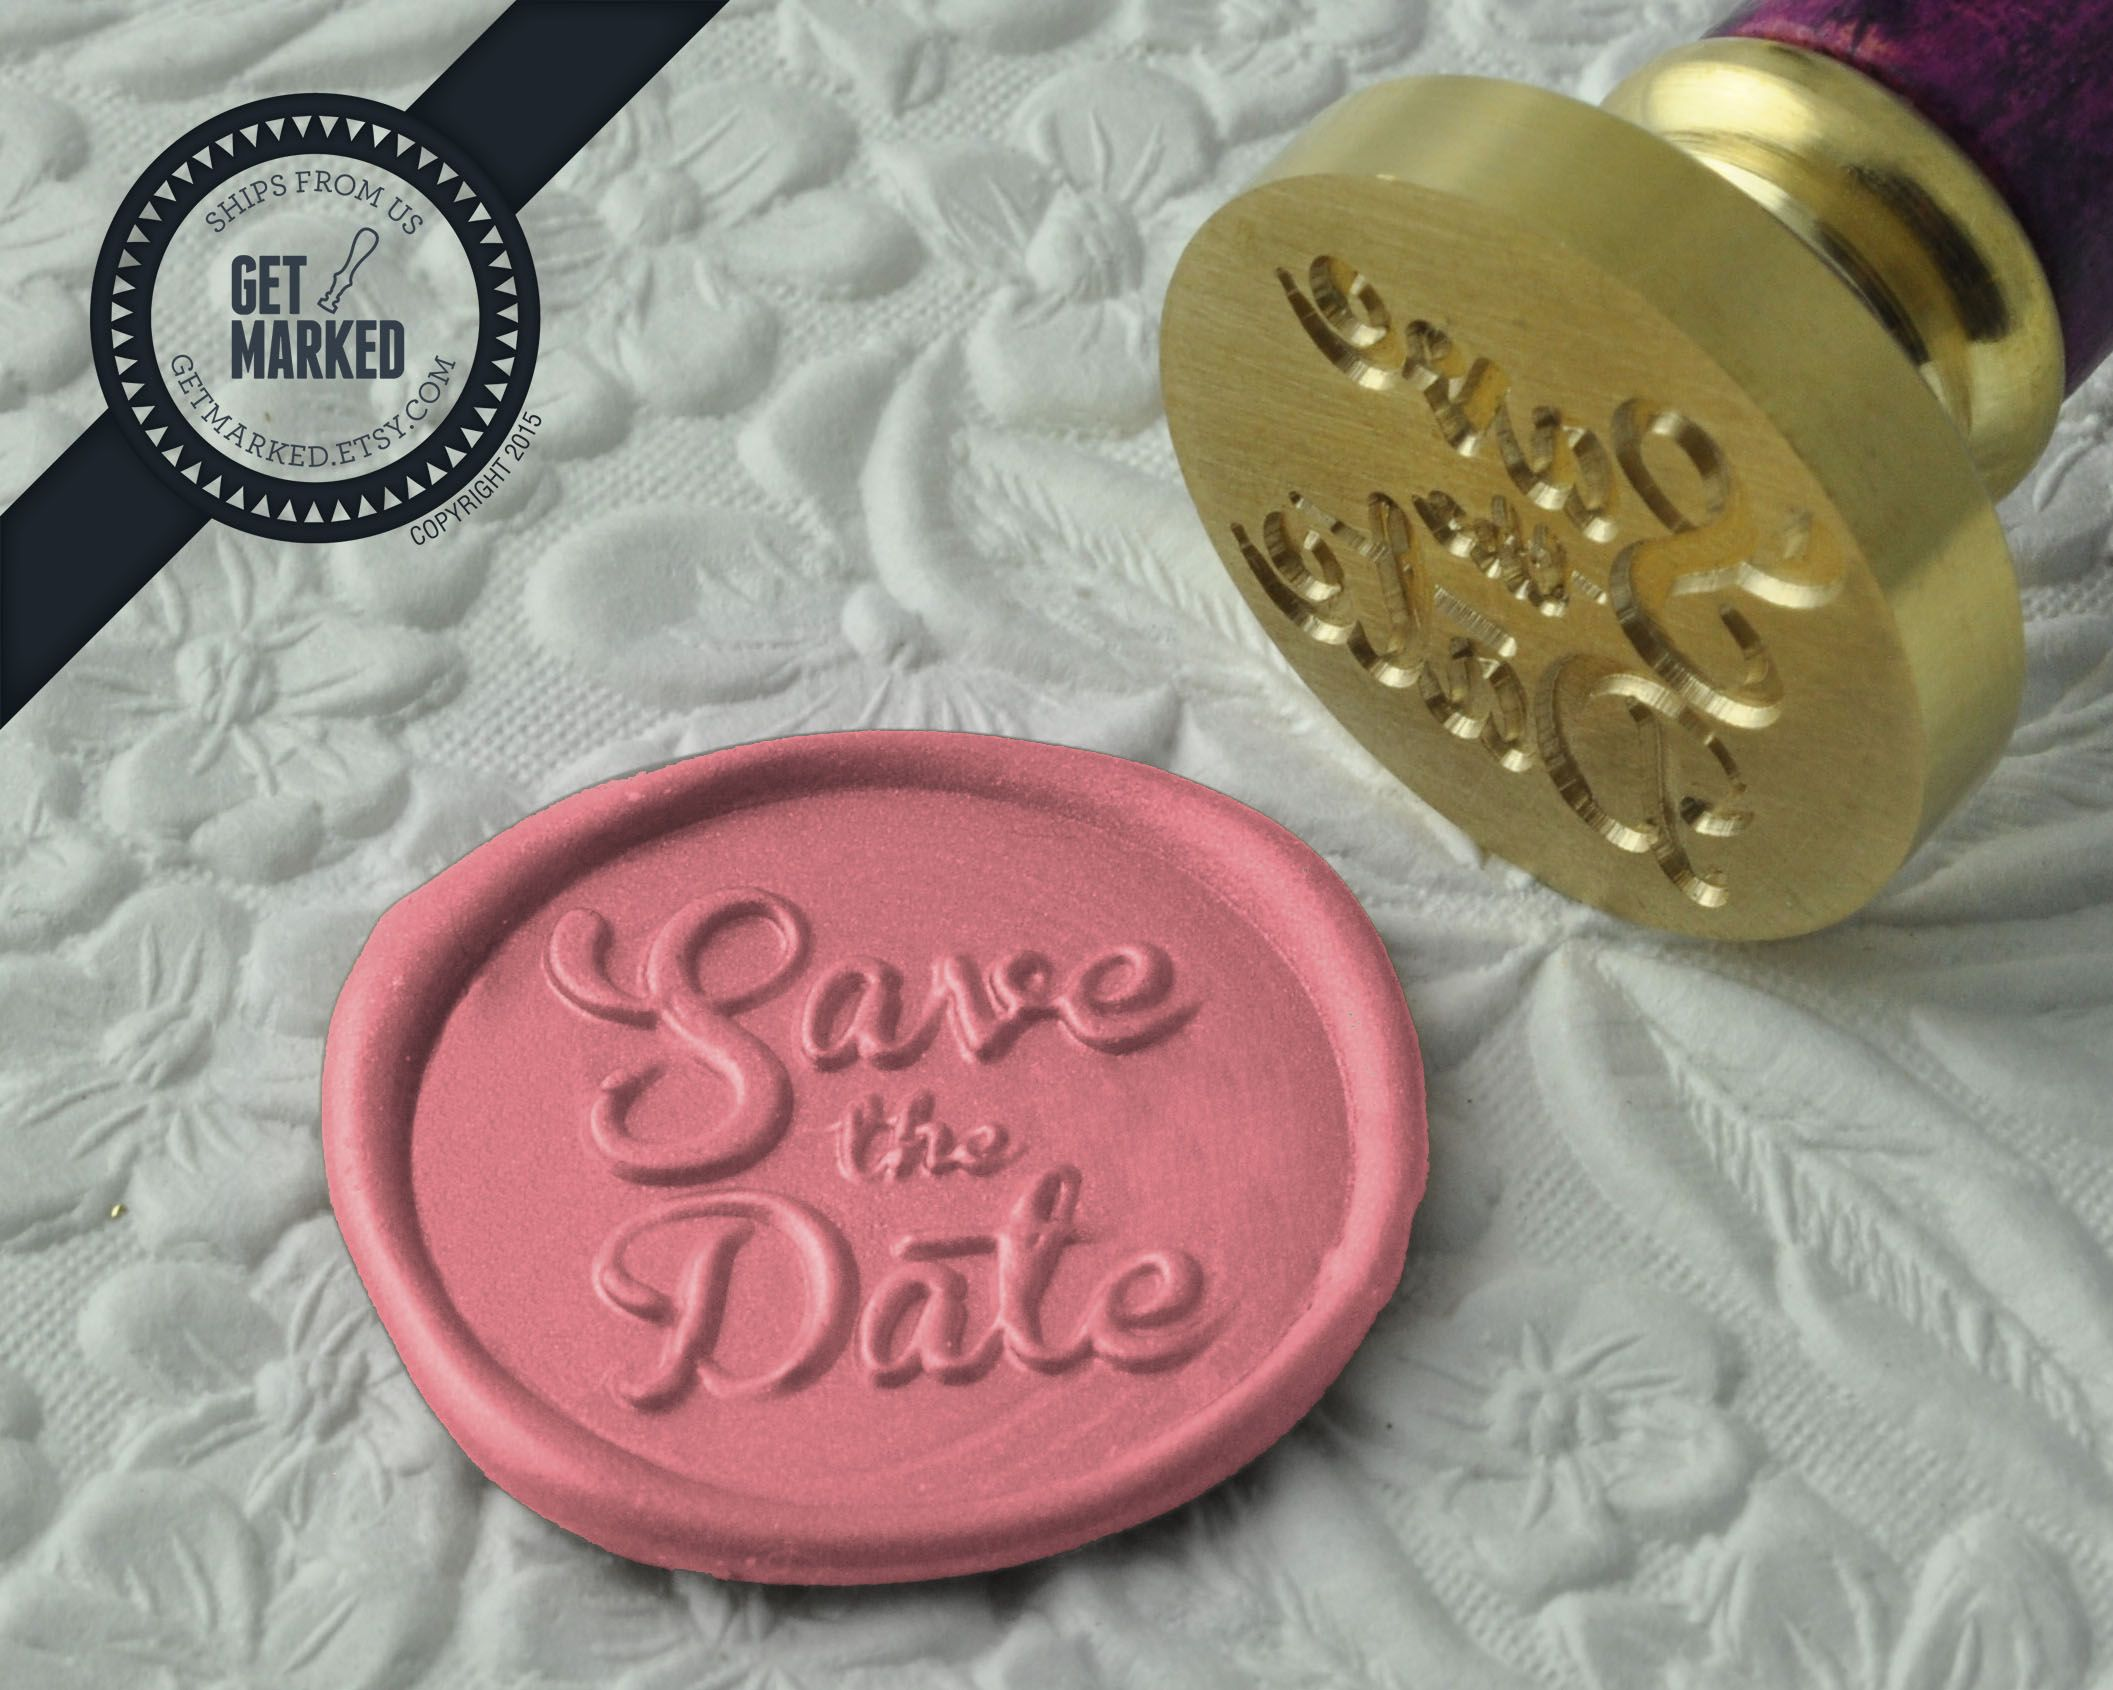 Save the Date - Wax Seal Stamp by Get Marked - Wedding Collection ...